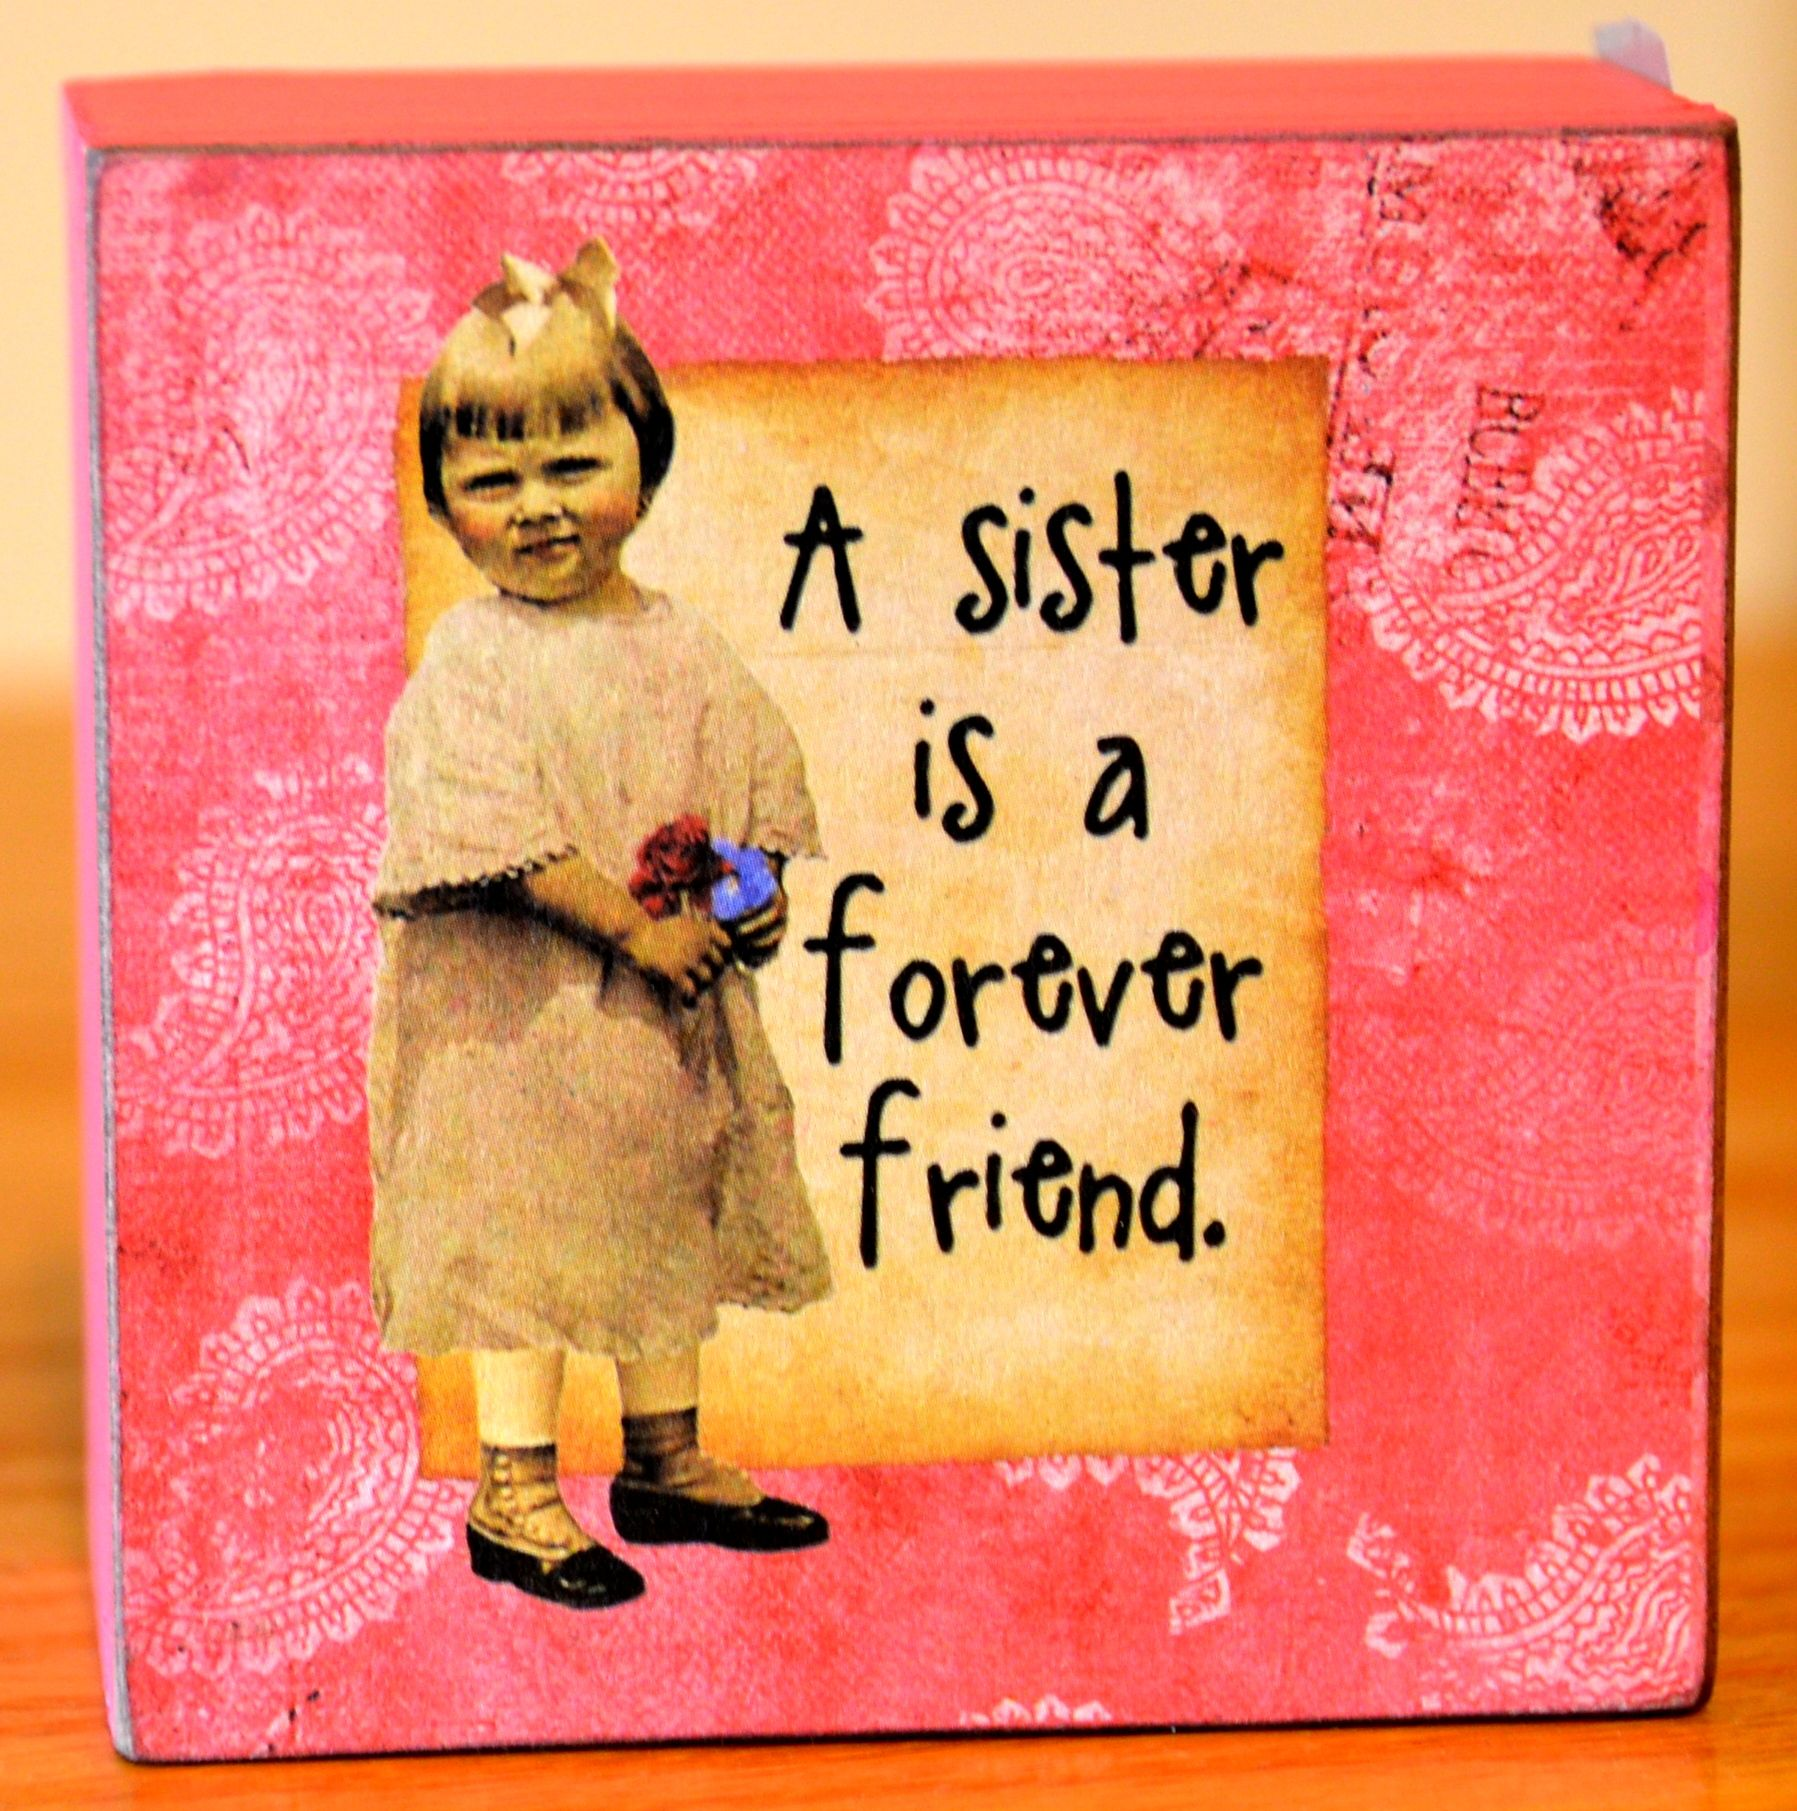 Fun sister quotes and fun art for the wall. | Off The Wall ...